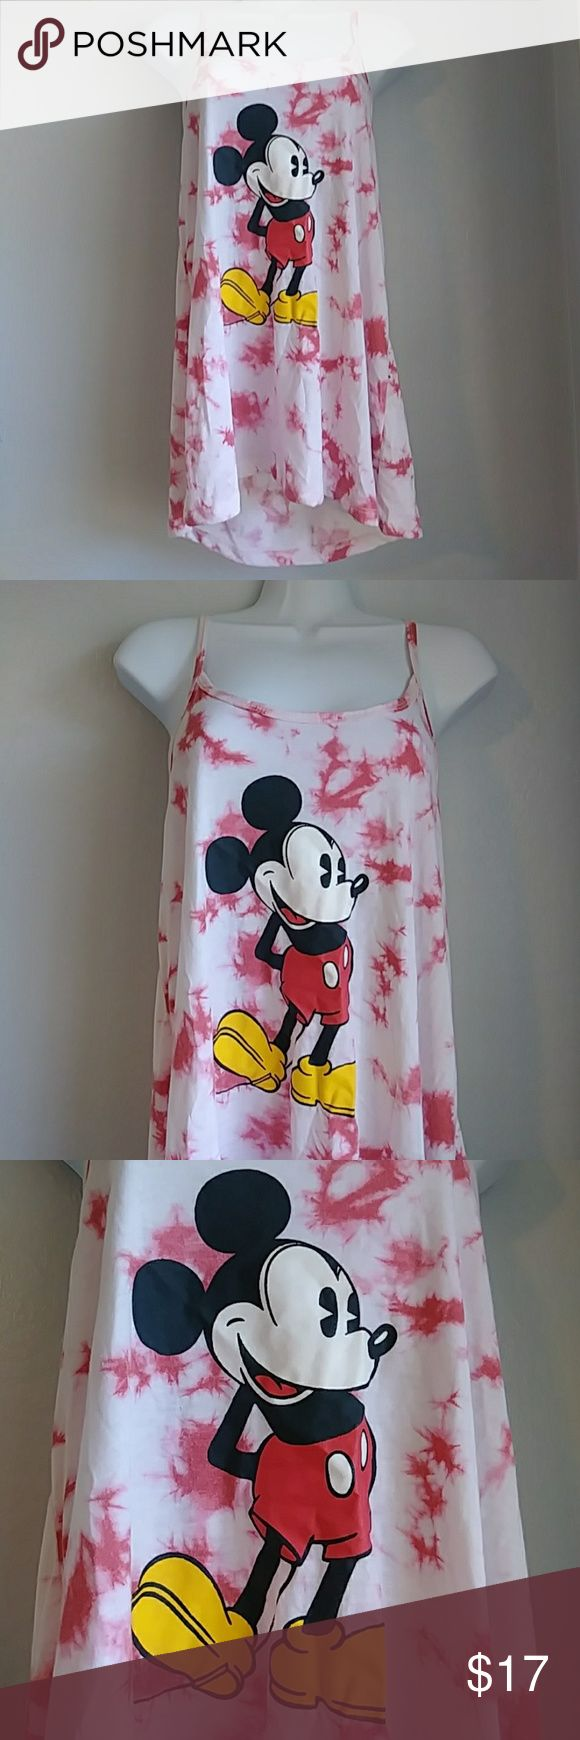 """Disney tie dye mickey mouse racer back tank sz: l Disney tie dye mickey mouse racer back tank sz: l Has red tie tie. Sz: large Chest: 18"""" Length: 25"""" Has no flaws. Disney Tops Tank Tops"""